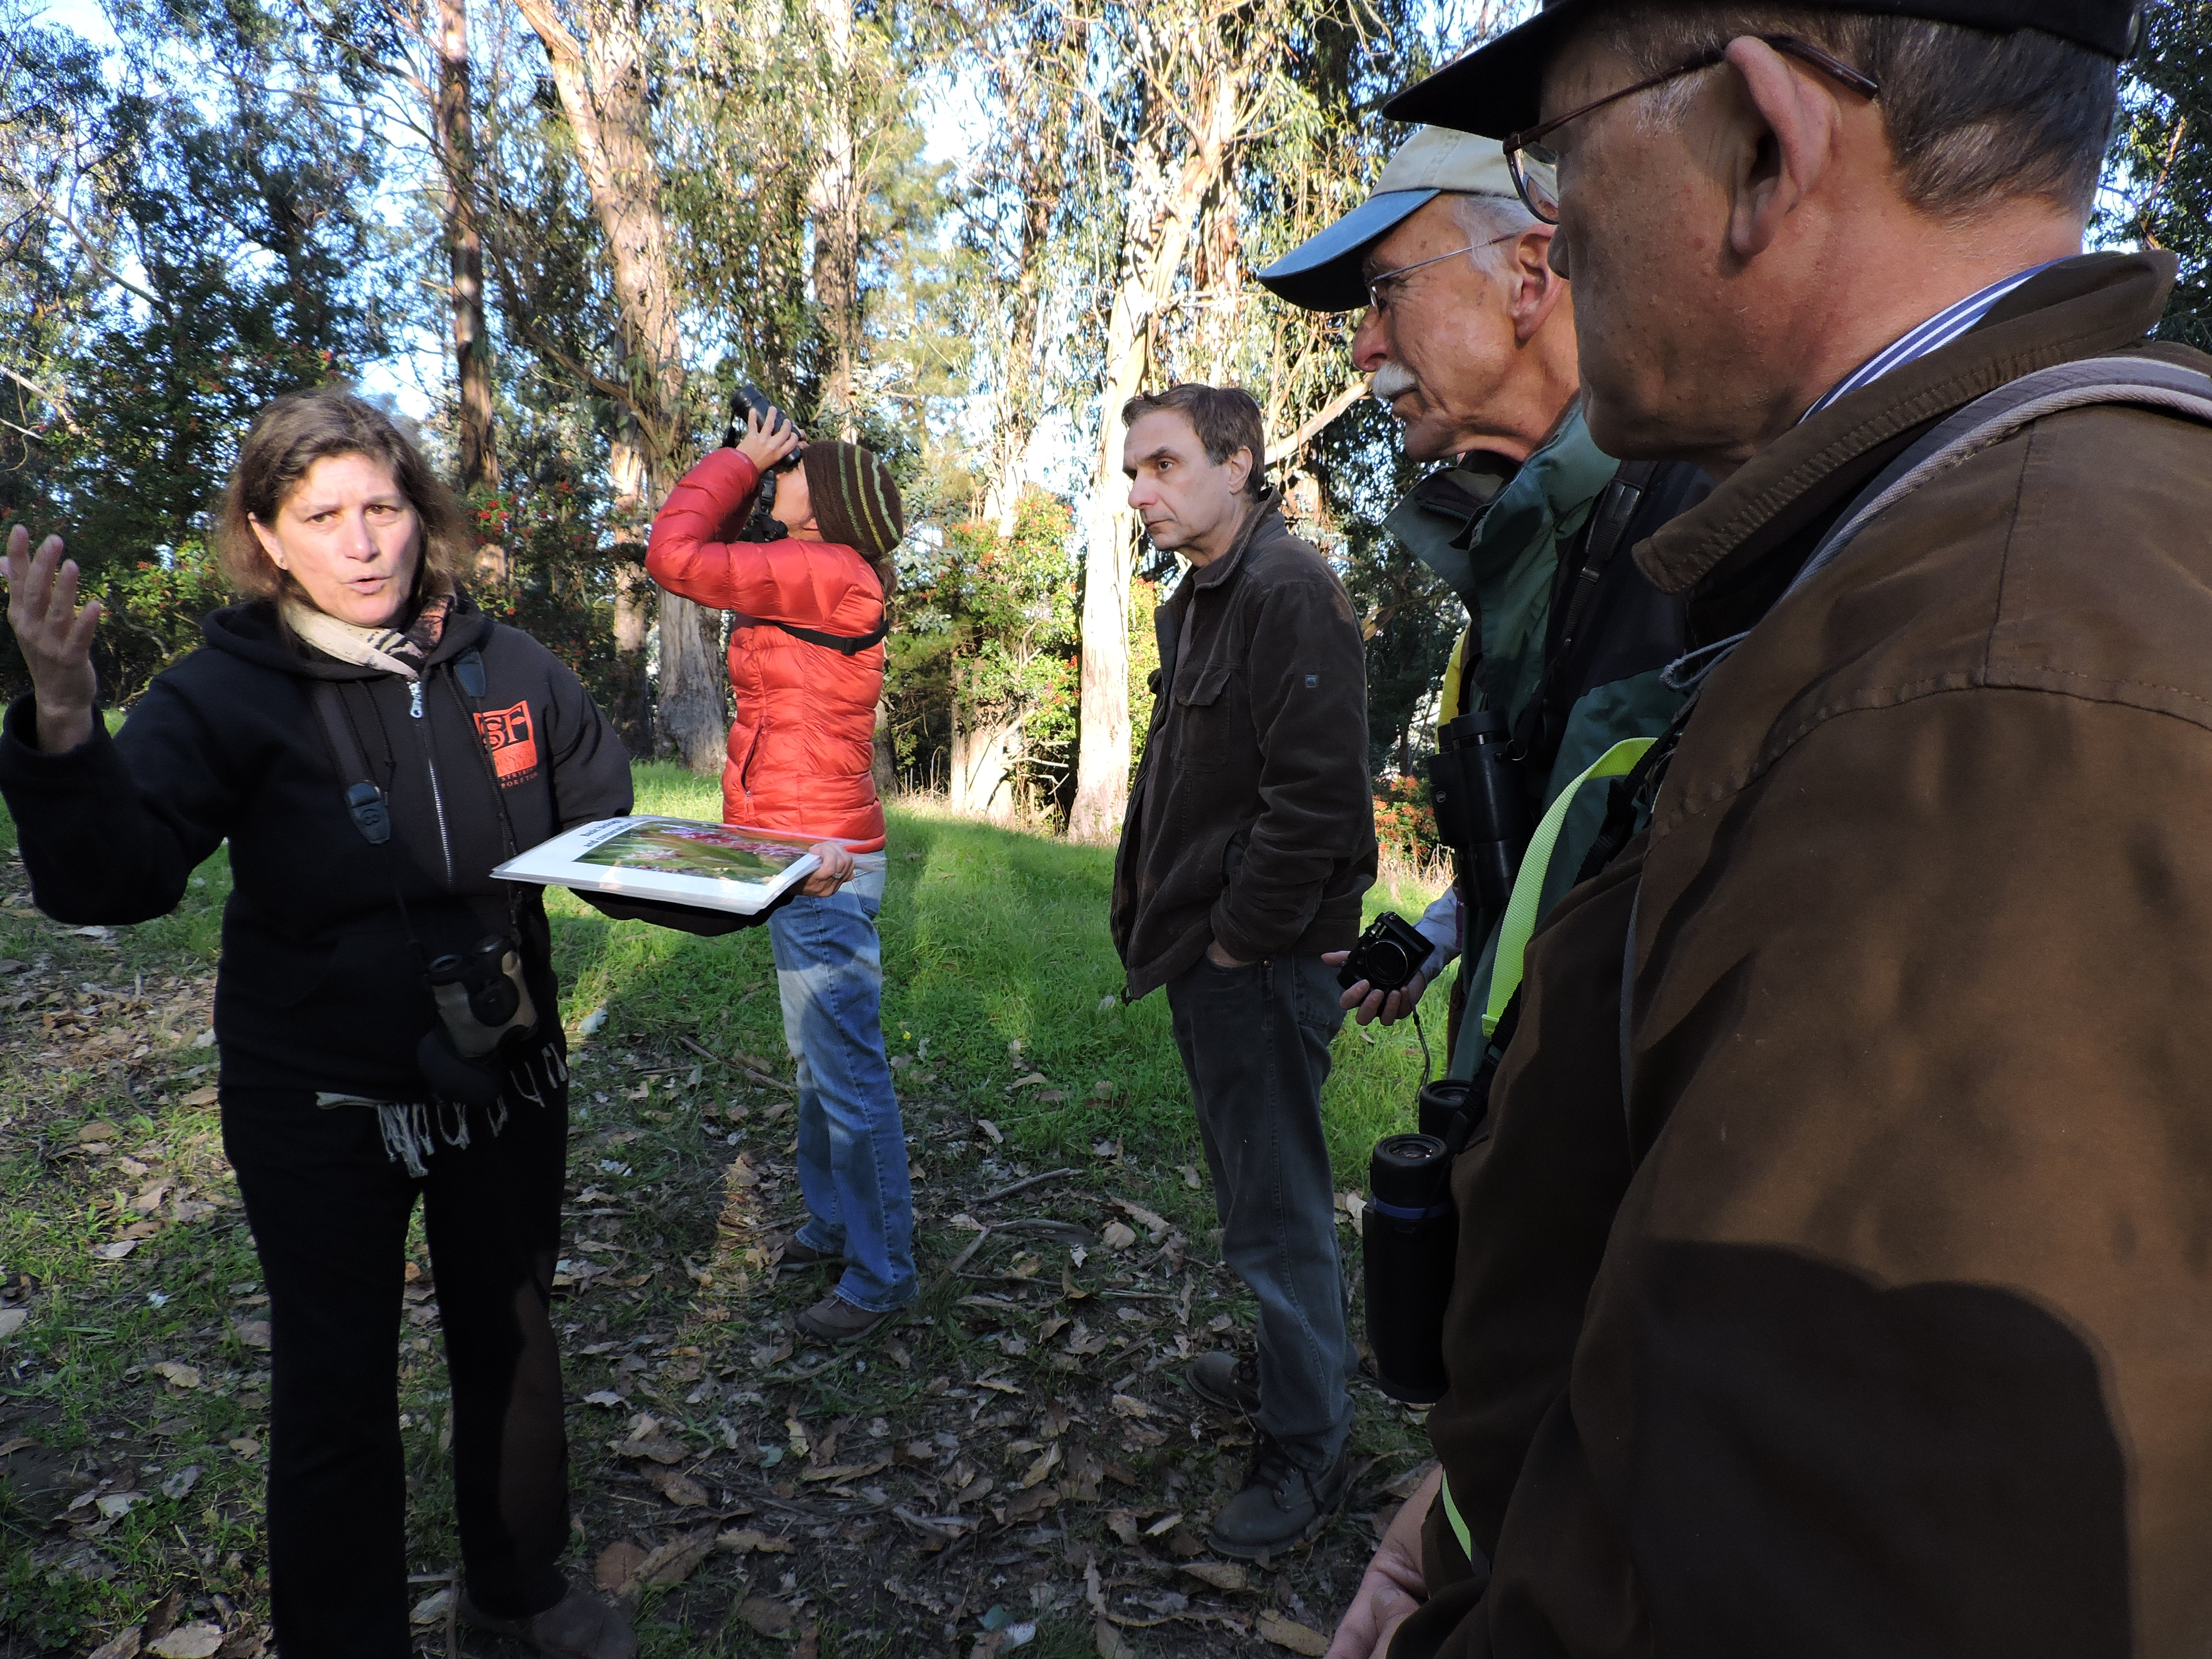 A woman in a dark coat (left) speaks to an assembled group of volunteers (right) in a wooded setting.